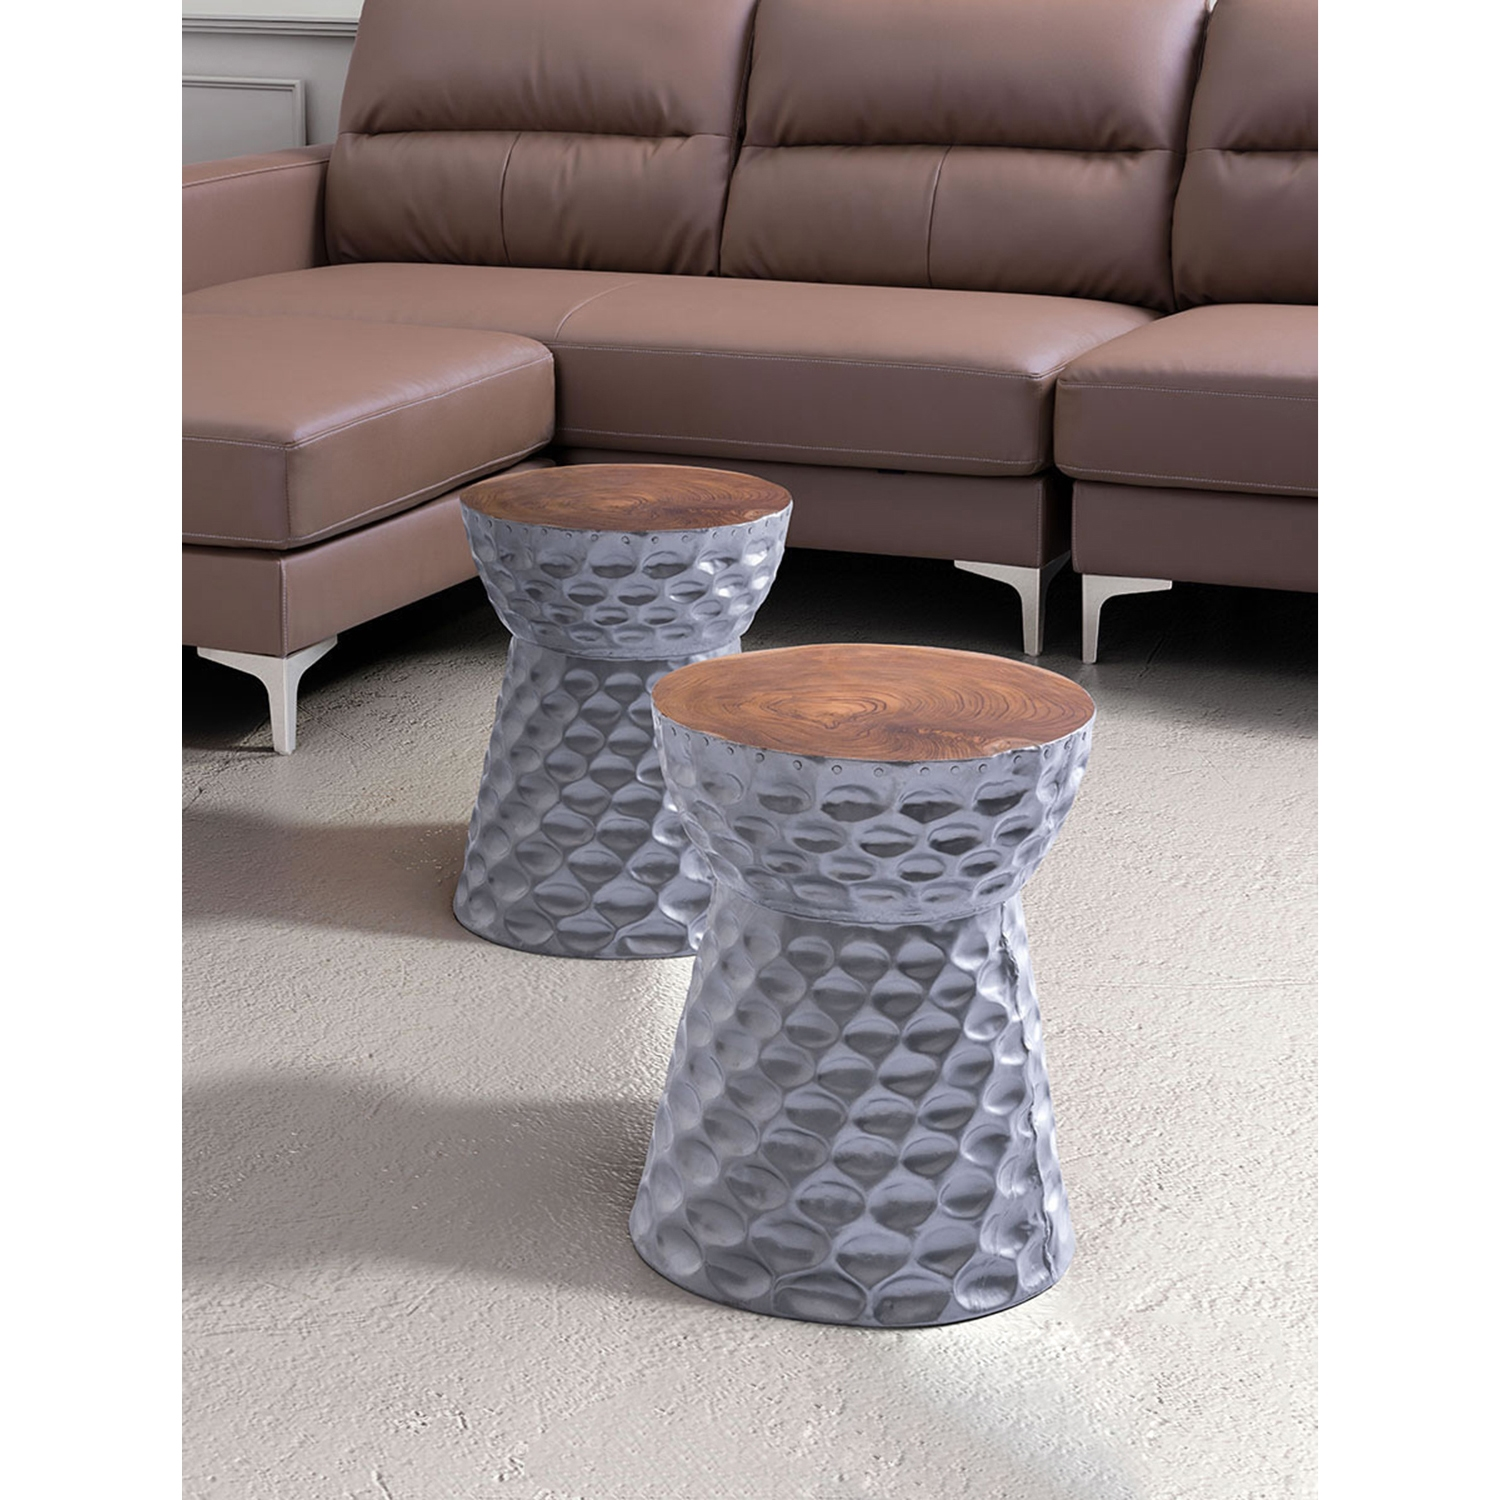 Ting Stool - Silver - ZM-100165